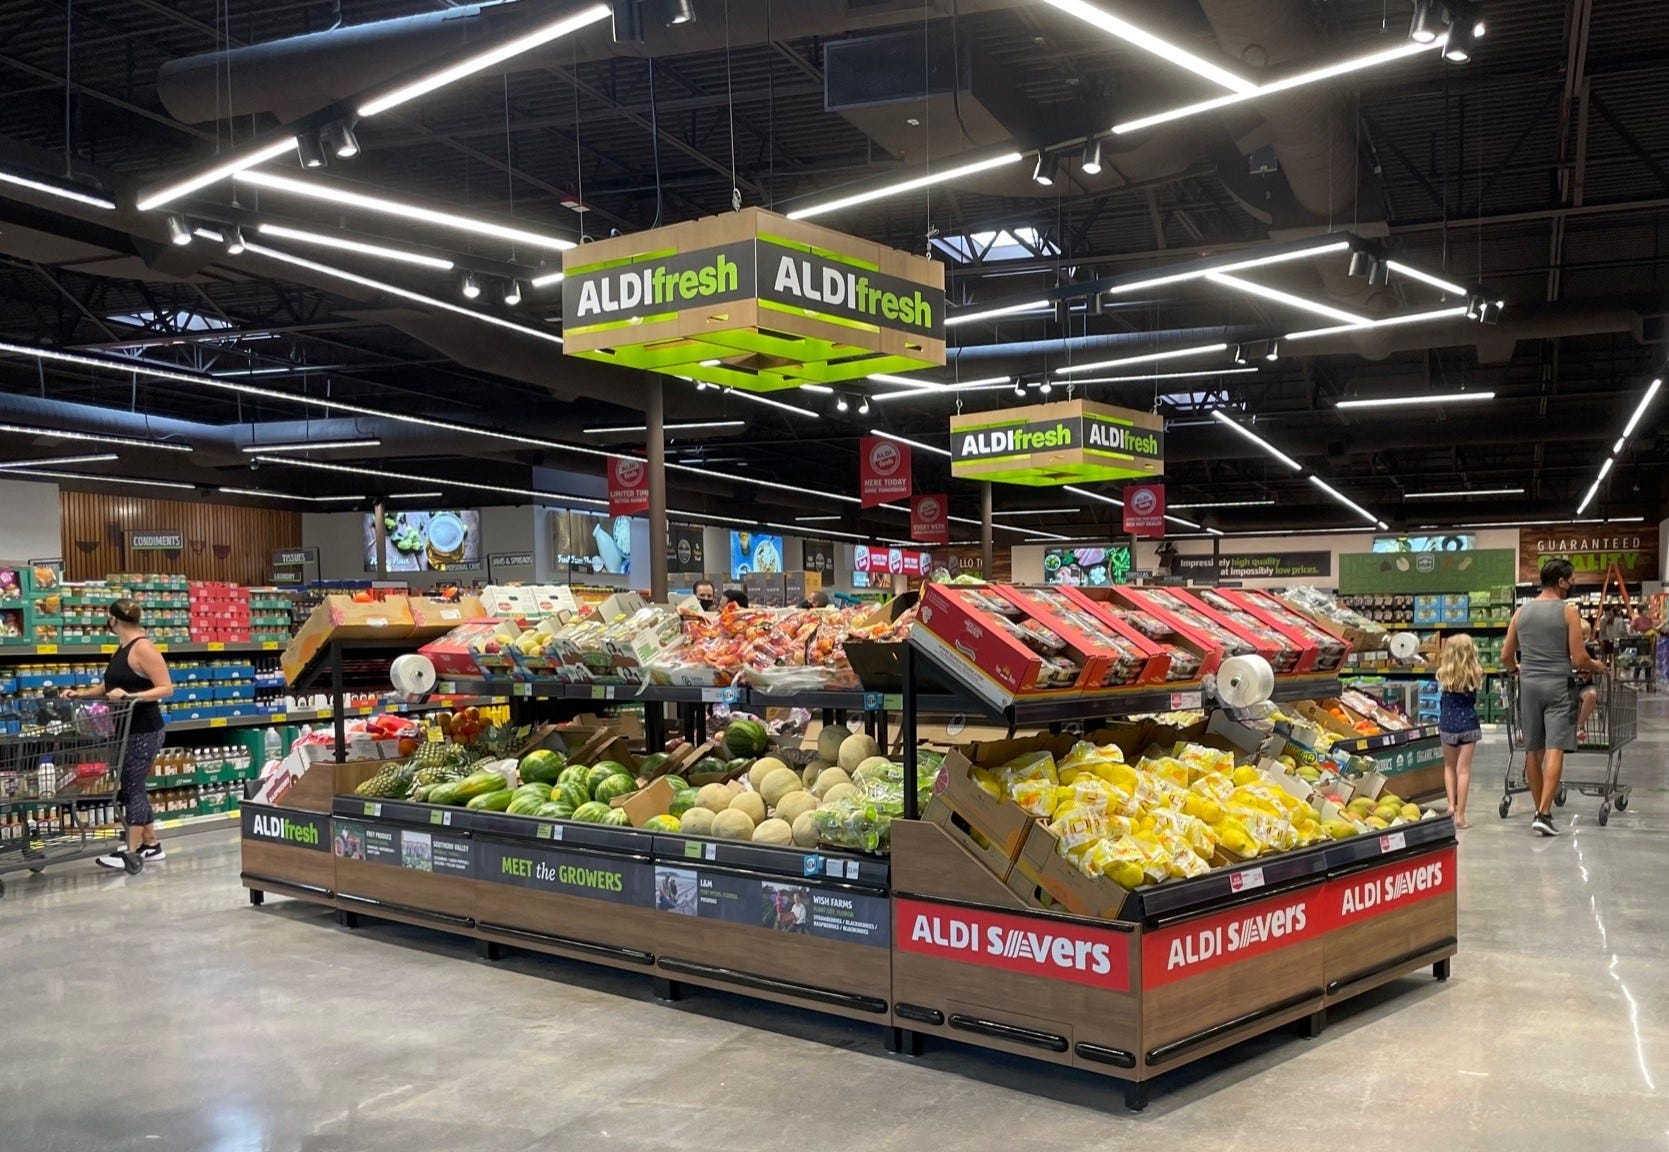 Aldi's produce is often priced lower than competitors.